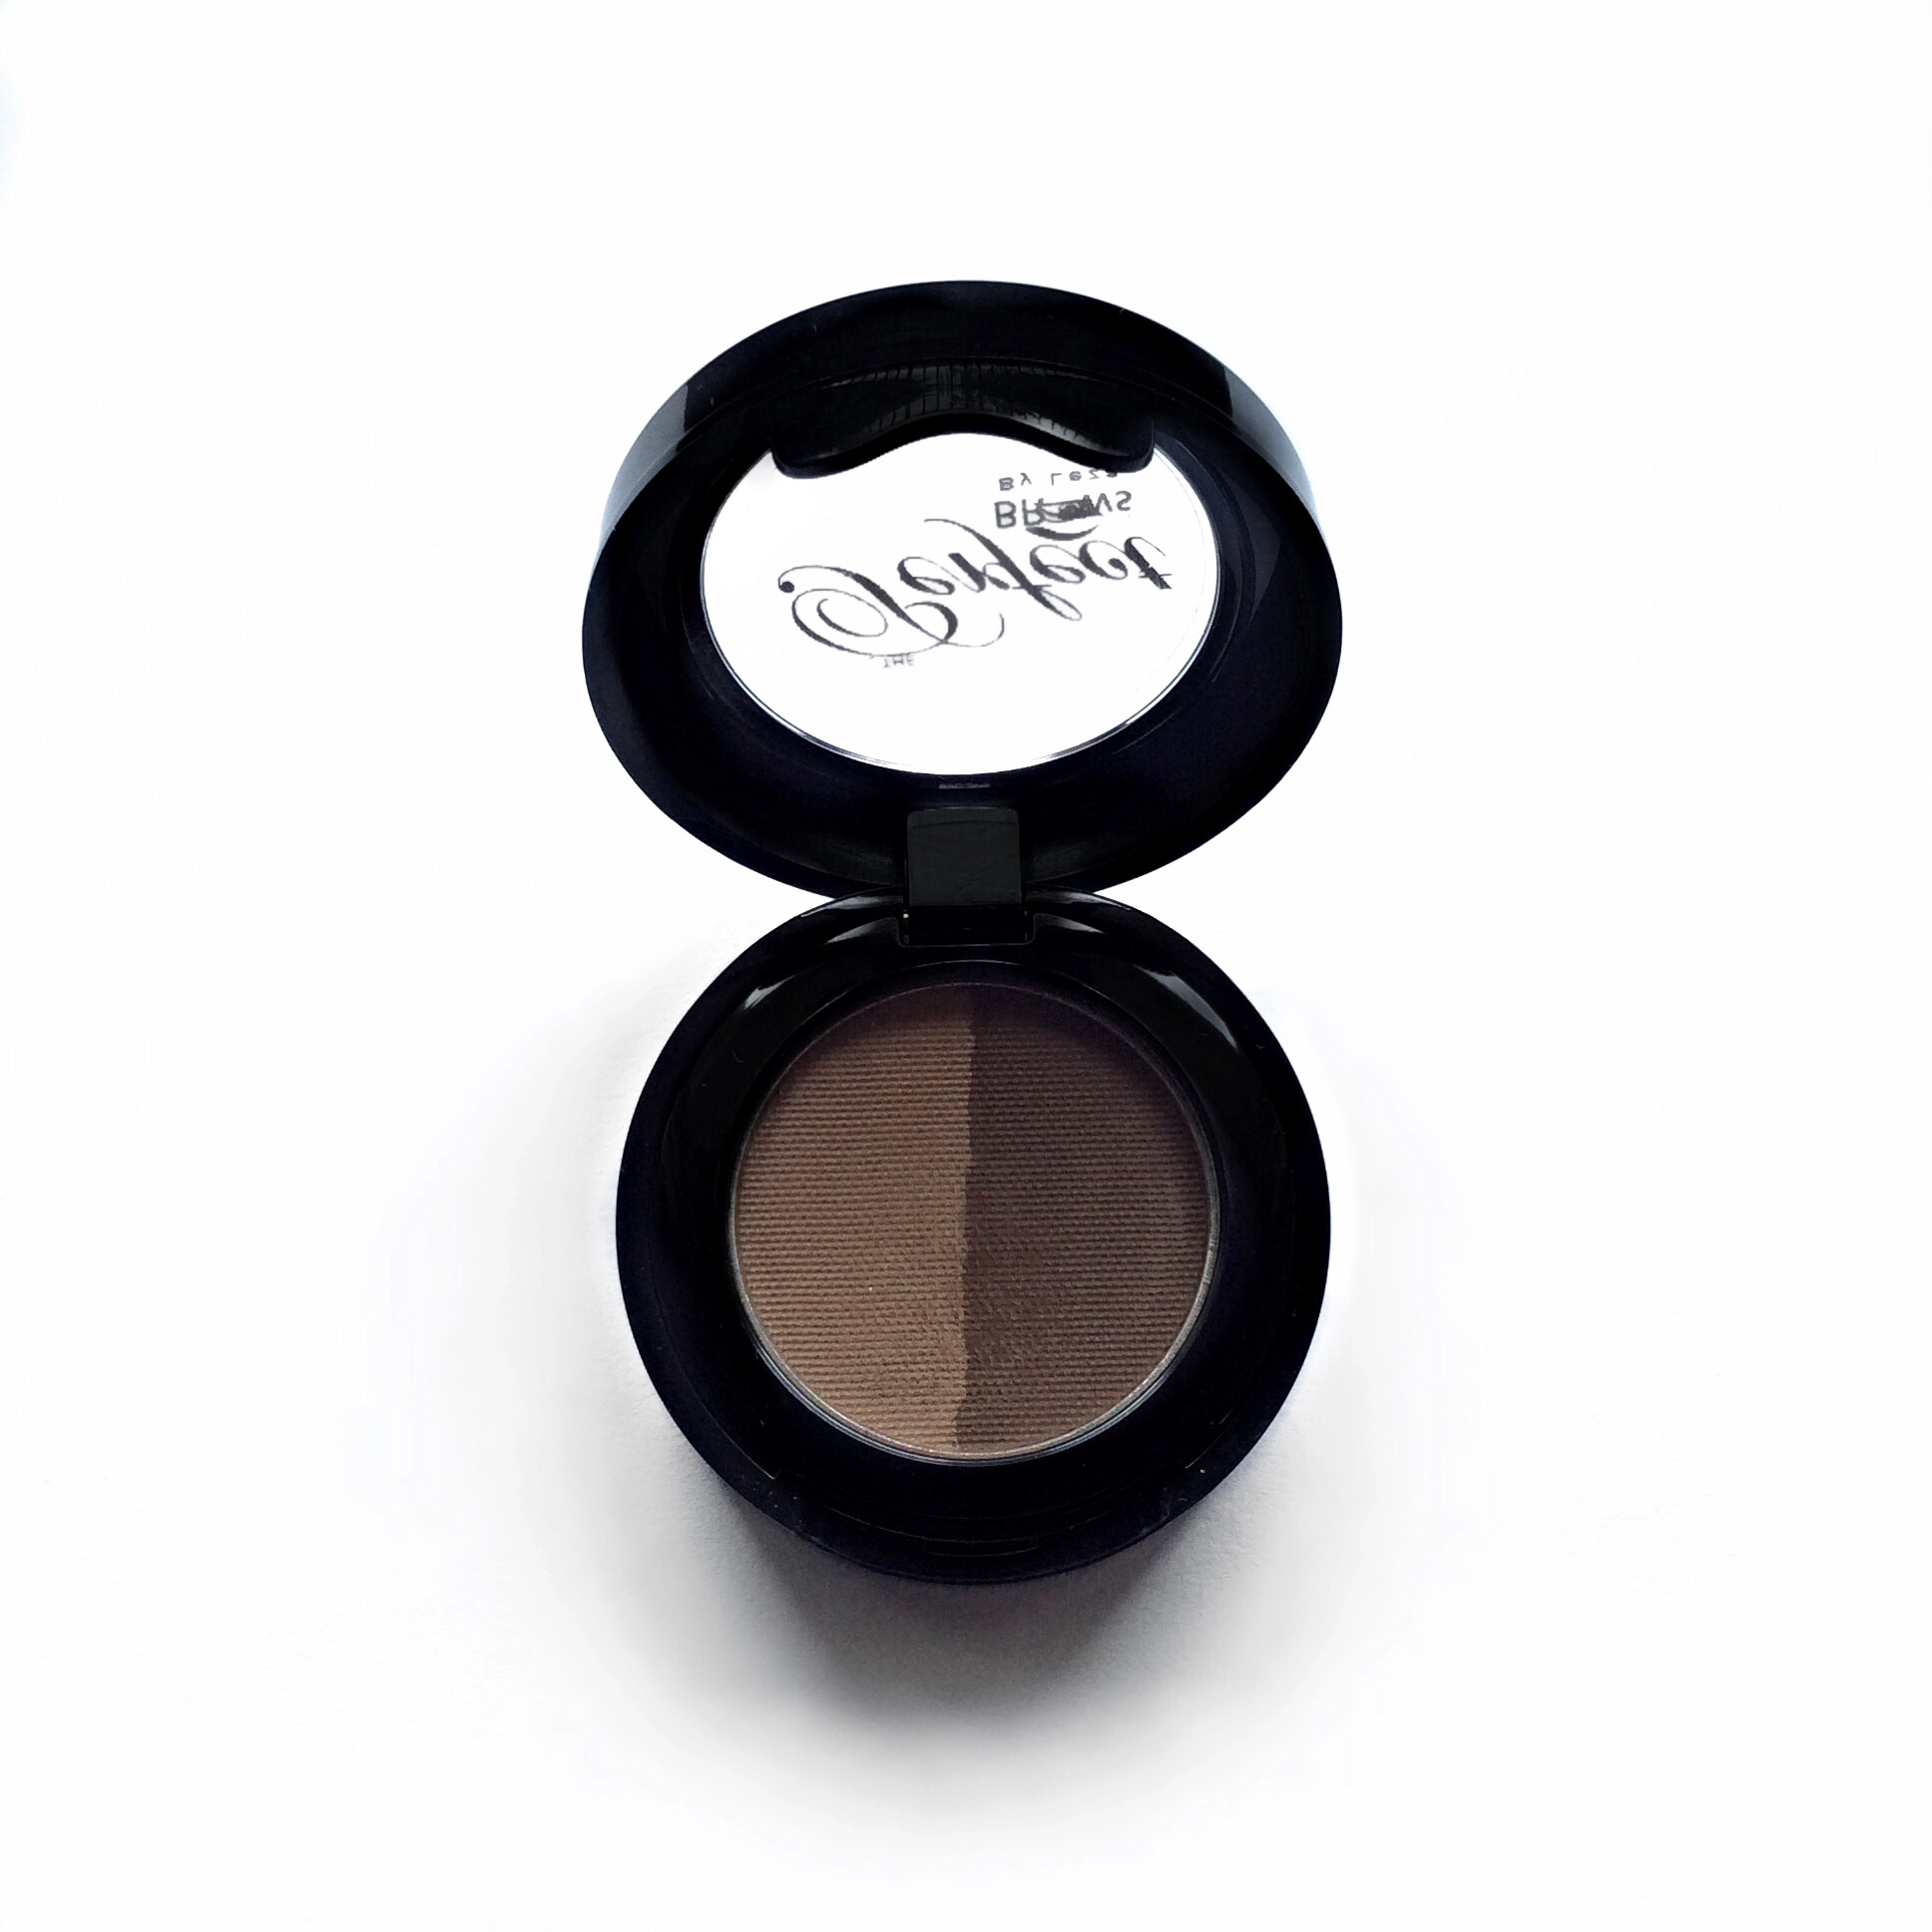 Brow Powder Duo in Brunette